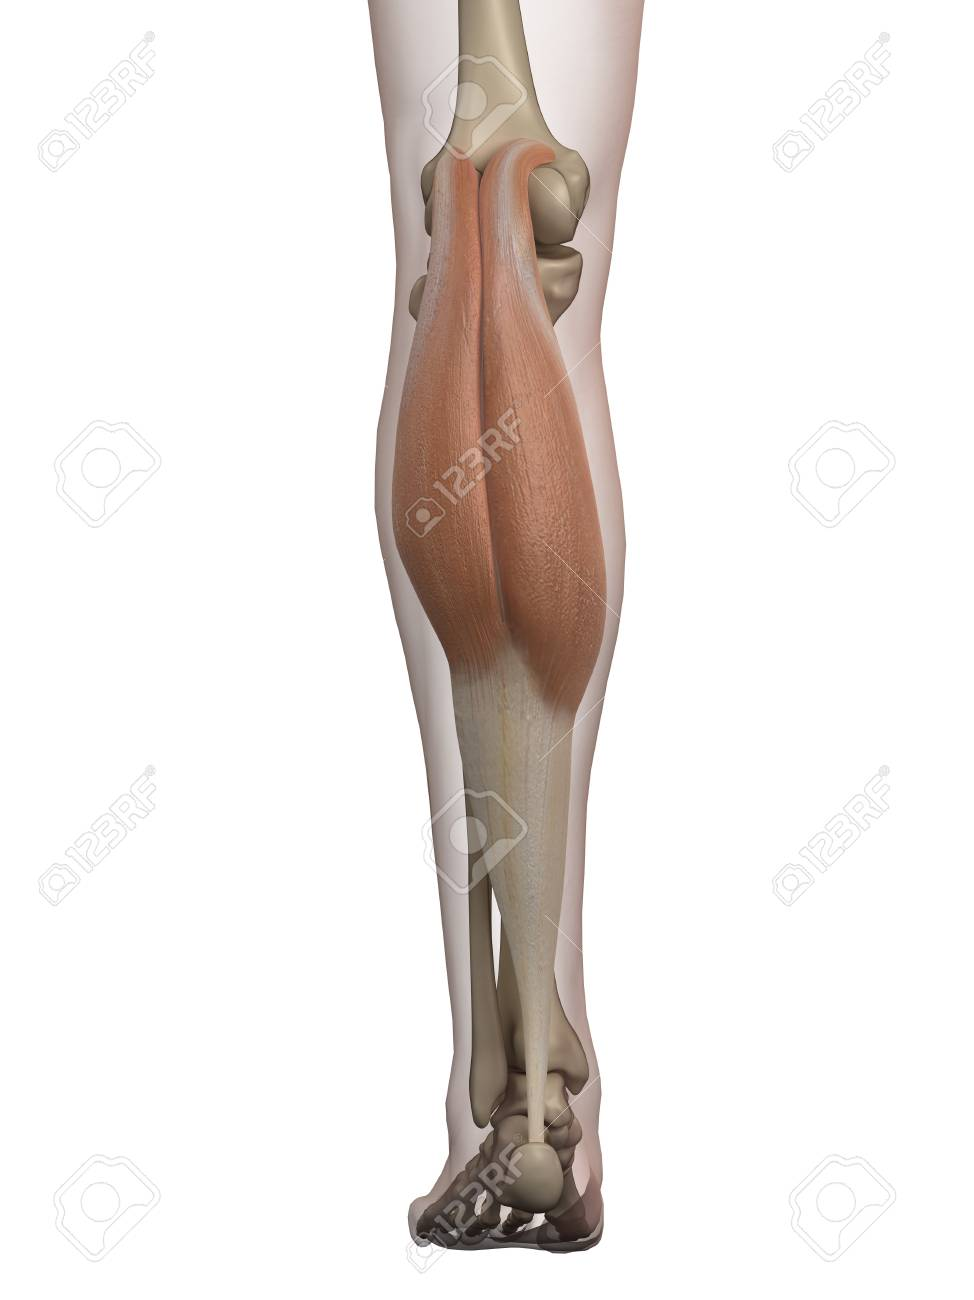 Human Calf Muscle, Illustration Stock Photo, Picture And Royalty ...